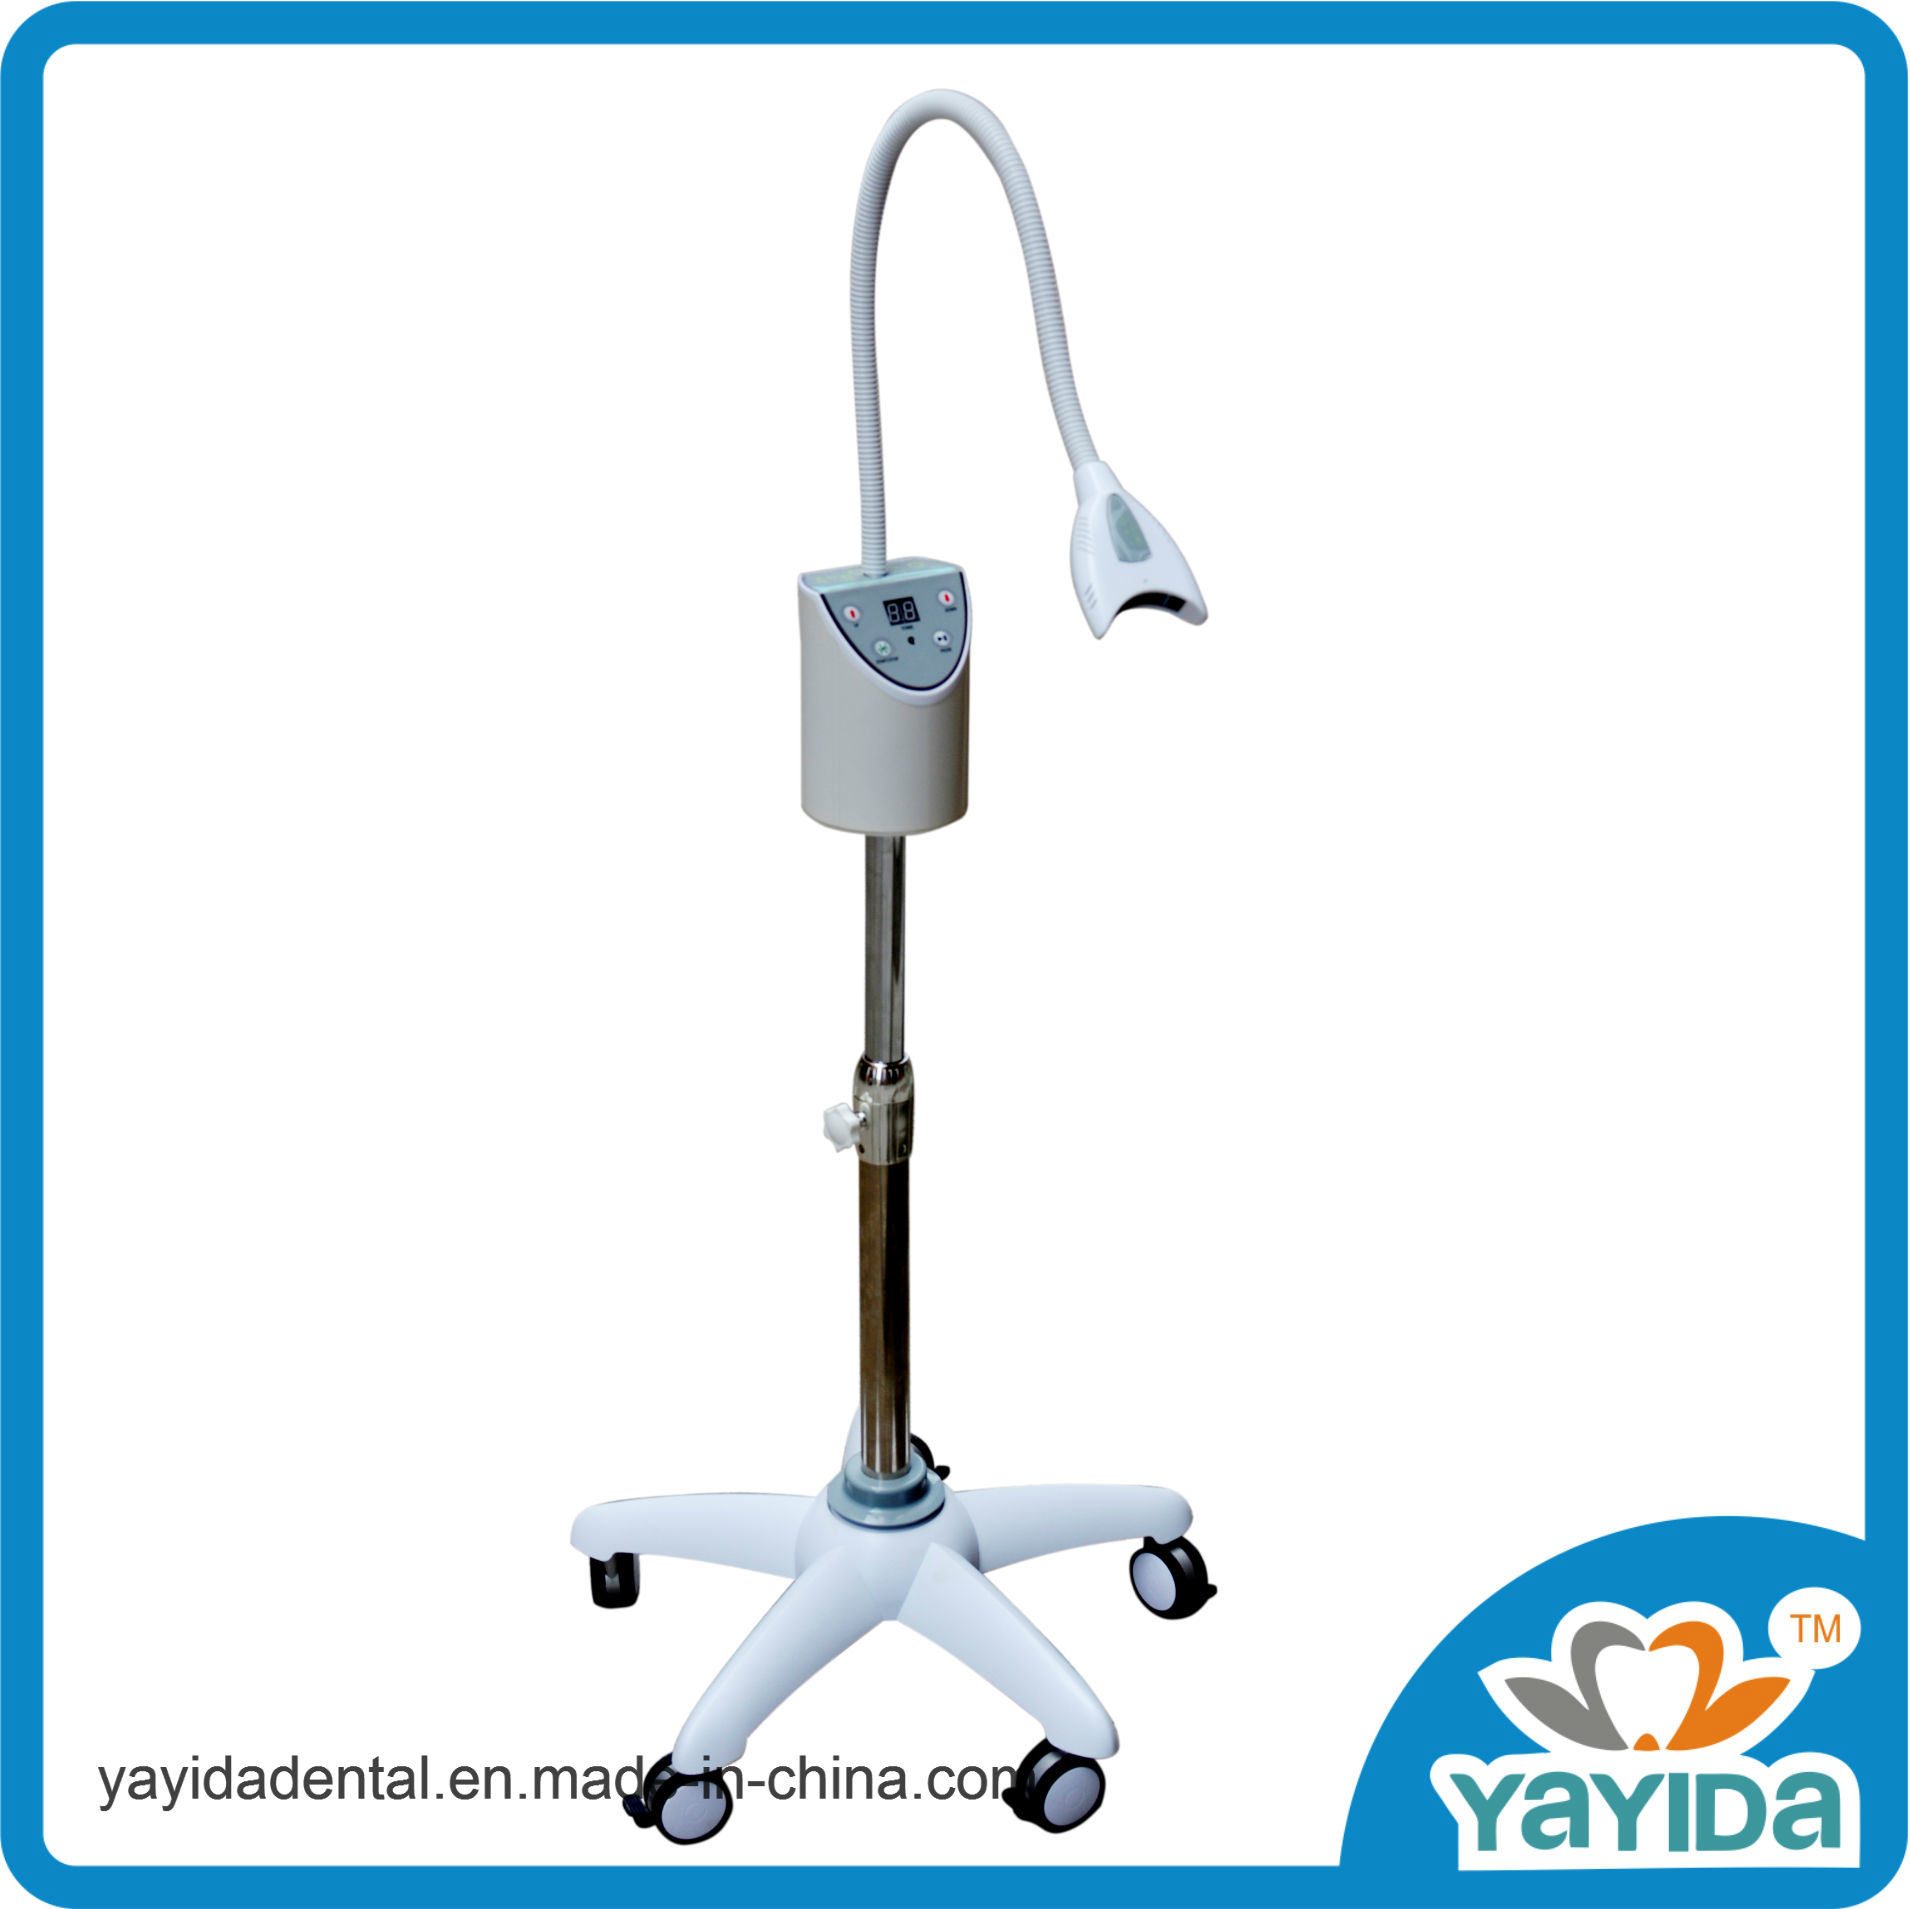 Dental Teeth Whitening Unit with Four High Power Blue LED Lamps